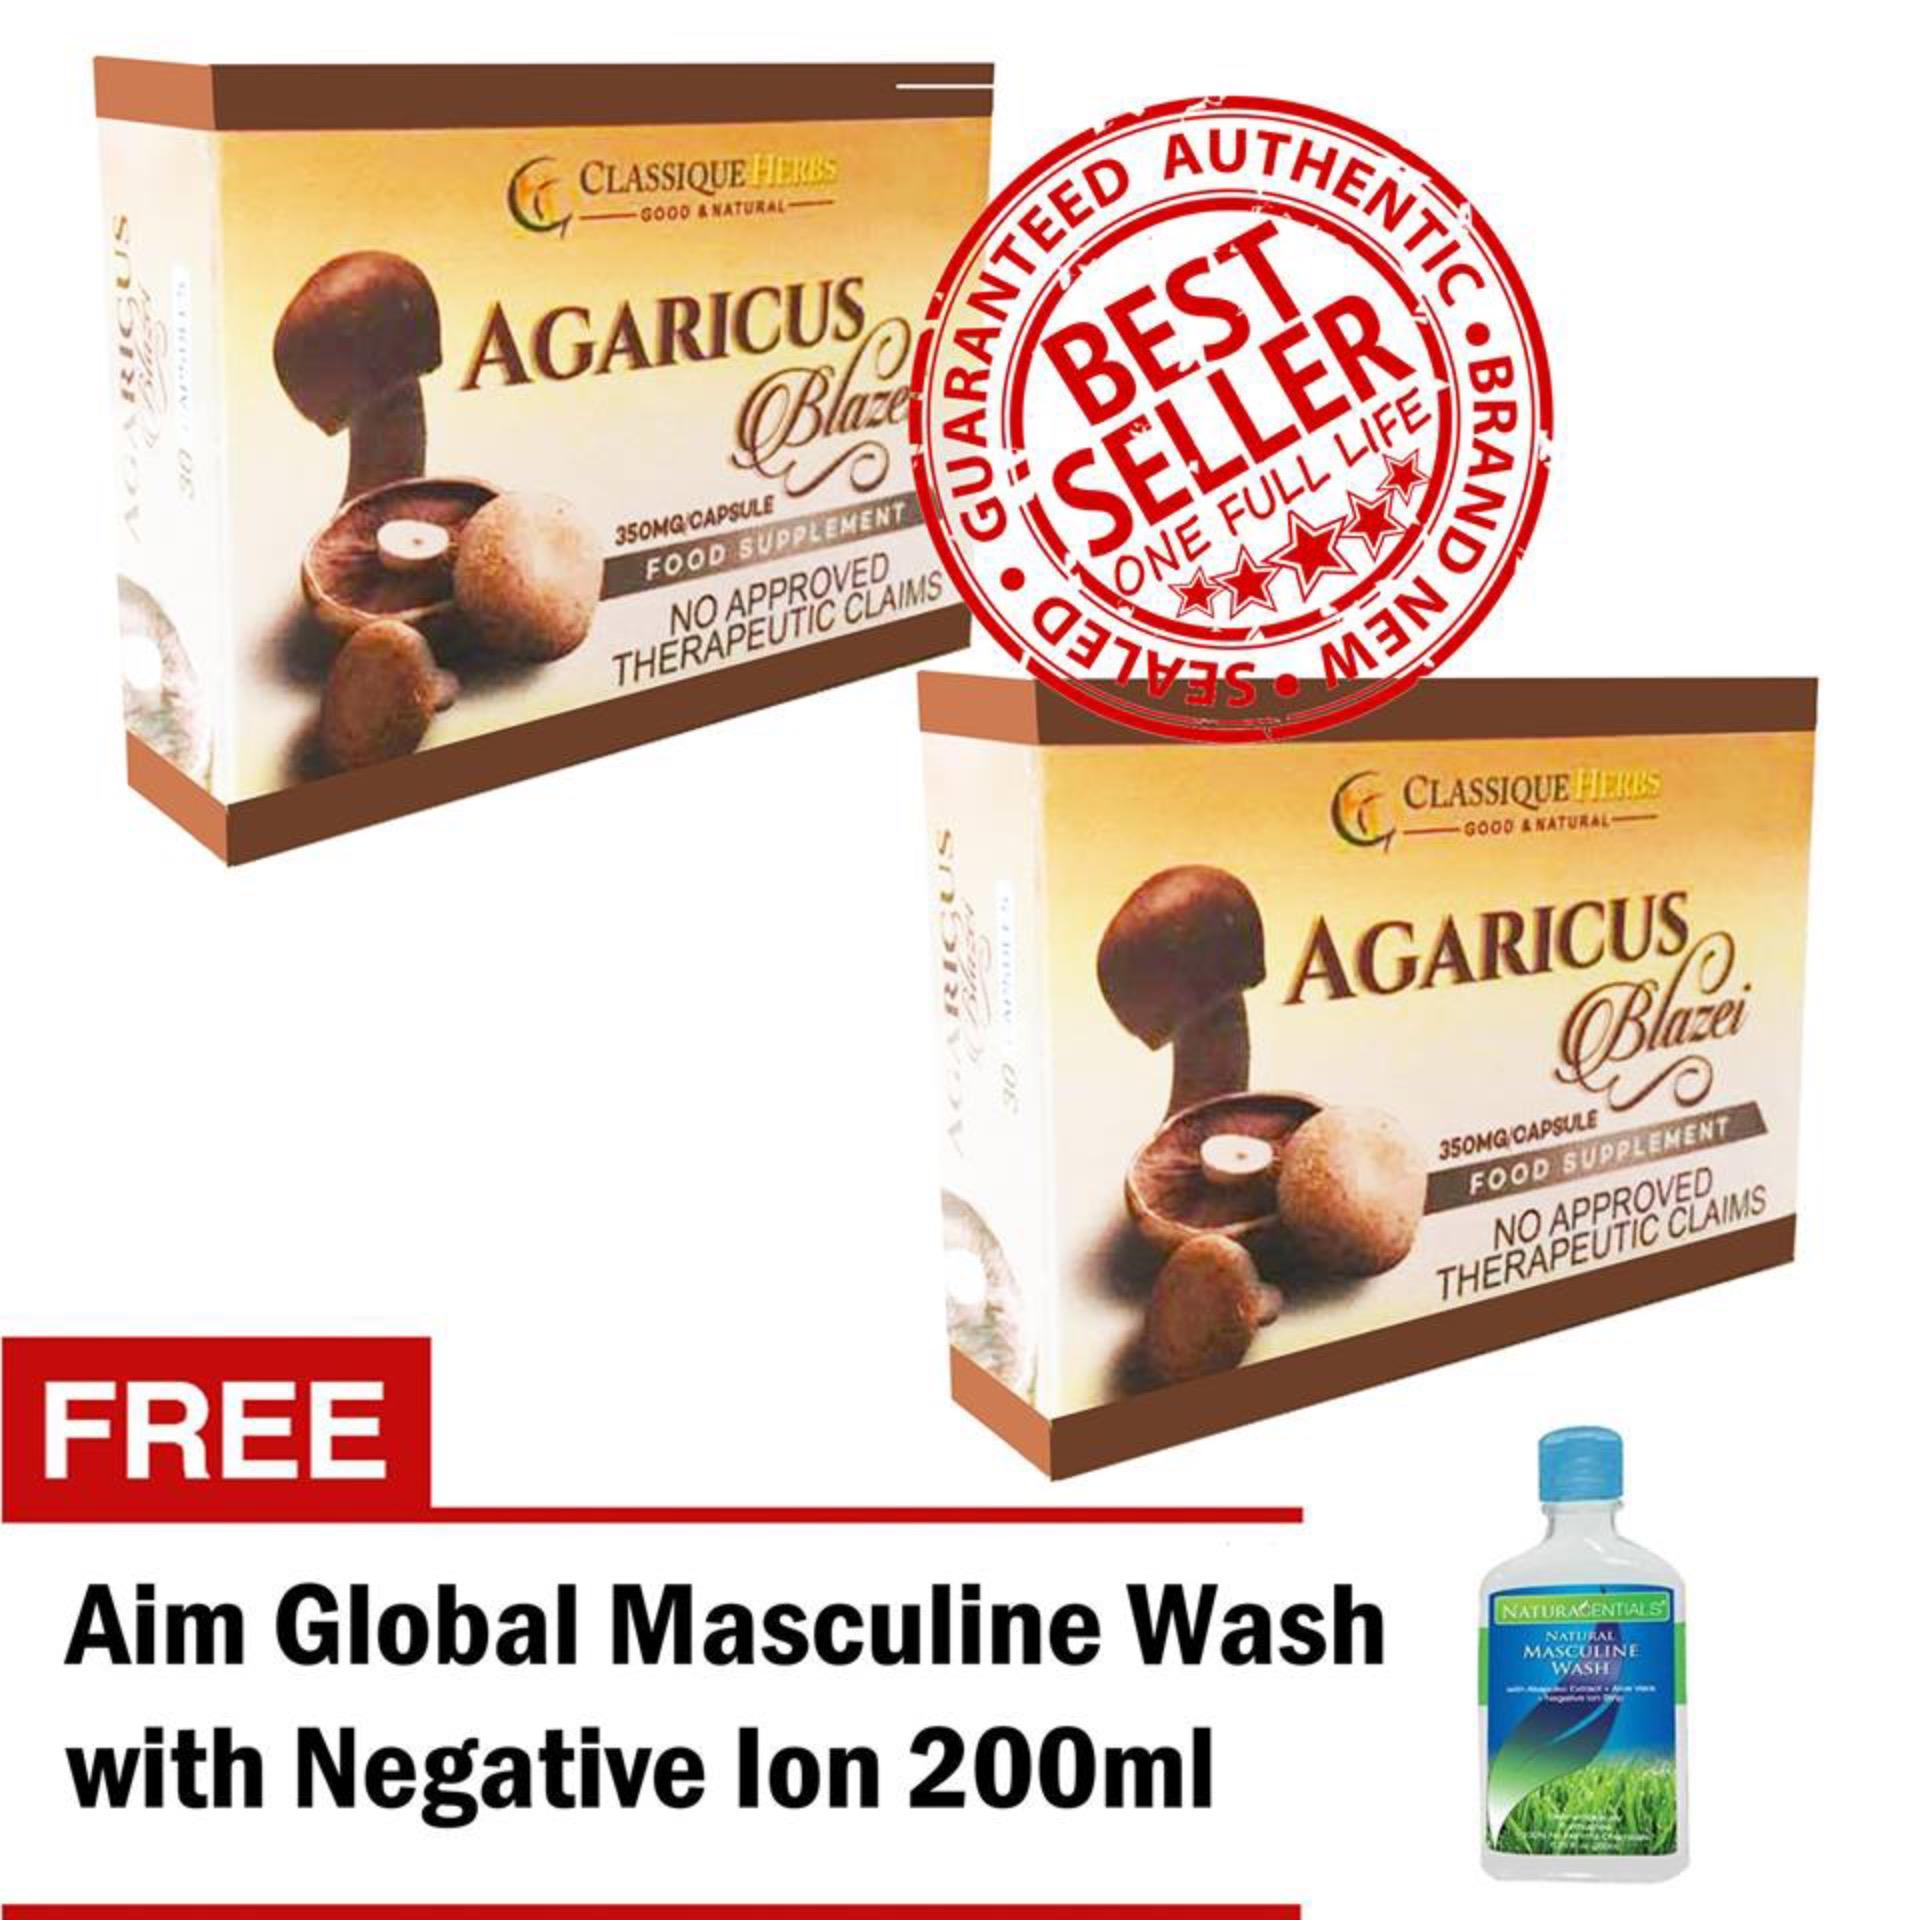 Classique Herbs Agaricus Blazeii Murill 30 Capsules/Box Sets of 2